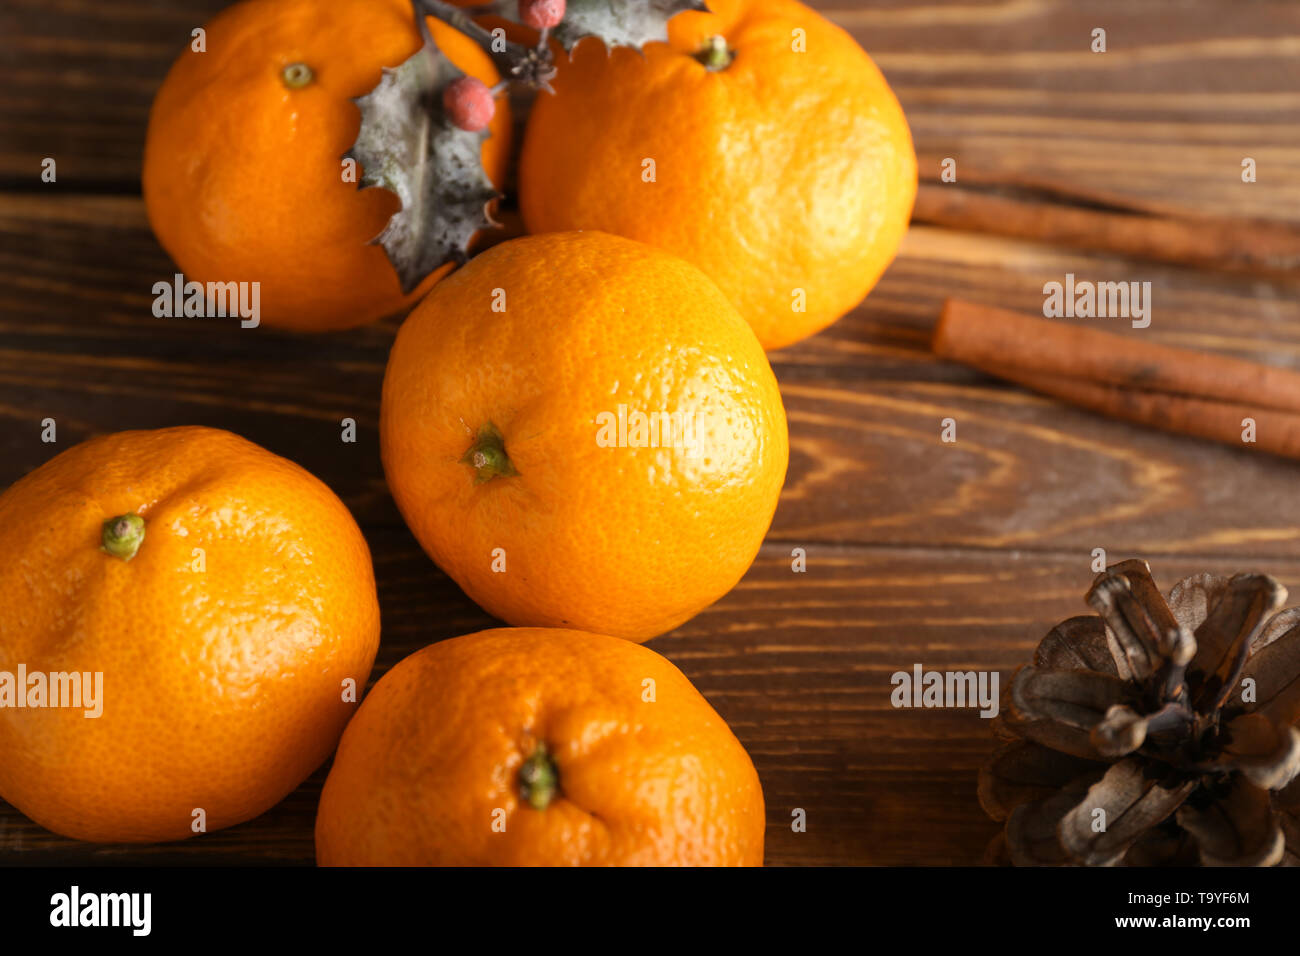 Ripe sweet tangerines on wooden background - Stock Image